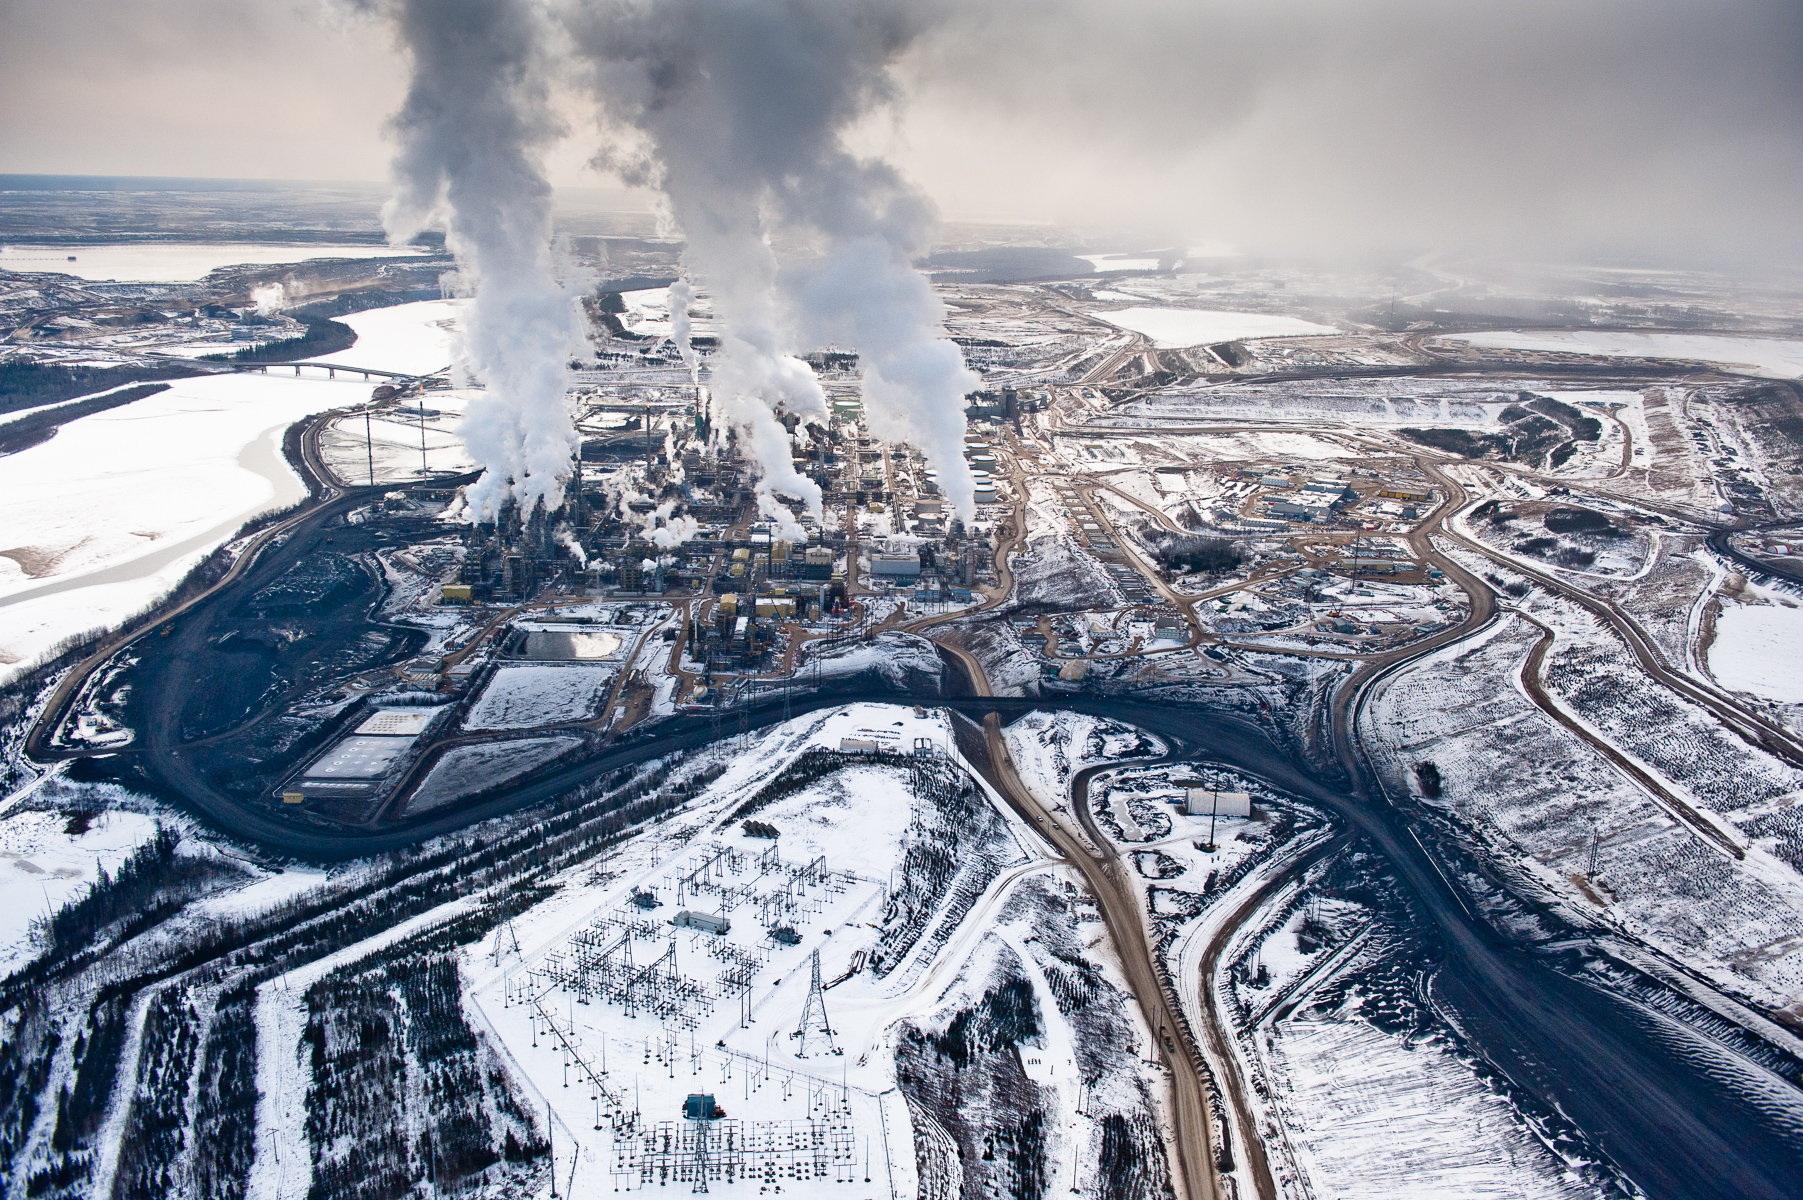 Suncor  Upgrader in Winter                                                                    Northern Alberta. Canada. 2010. The Alberta Tar Sands are Canada's single largest, and fastest growing, source of carbon. They produce about as much carbon annually as the nation of Denmark. The refining of the tar-like bitumen requires far more water and energy than the production of conventional oil and produces significantly more greenhouse gas.     Nikon D3, Nikkor 24-70  f2.8.  Shot at ISO 800, 24mm, 1/8000 at f4.5.  Alberta Tar Sands, Northern Alberta, Canada.